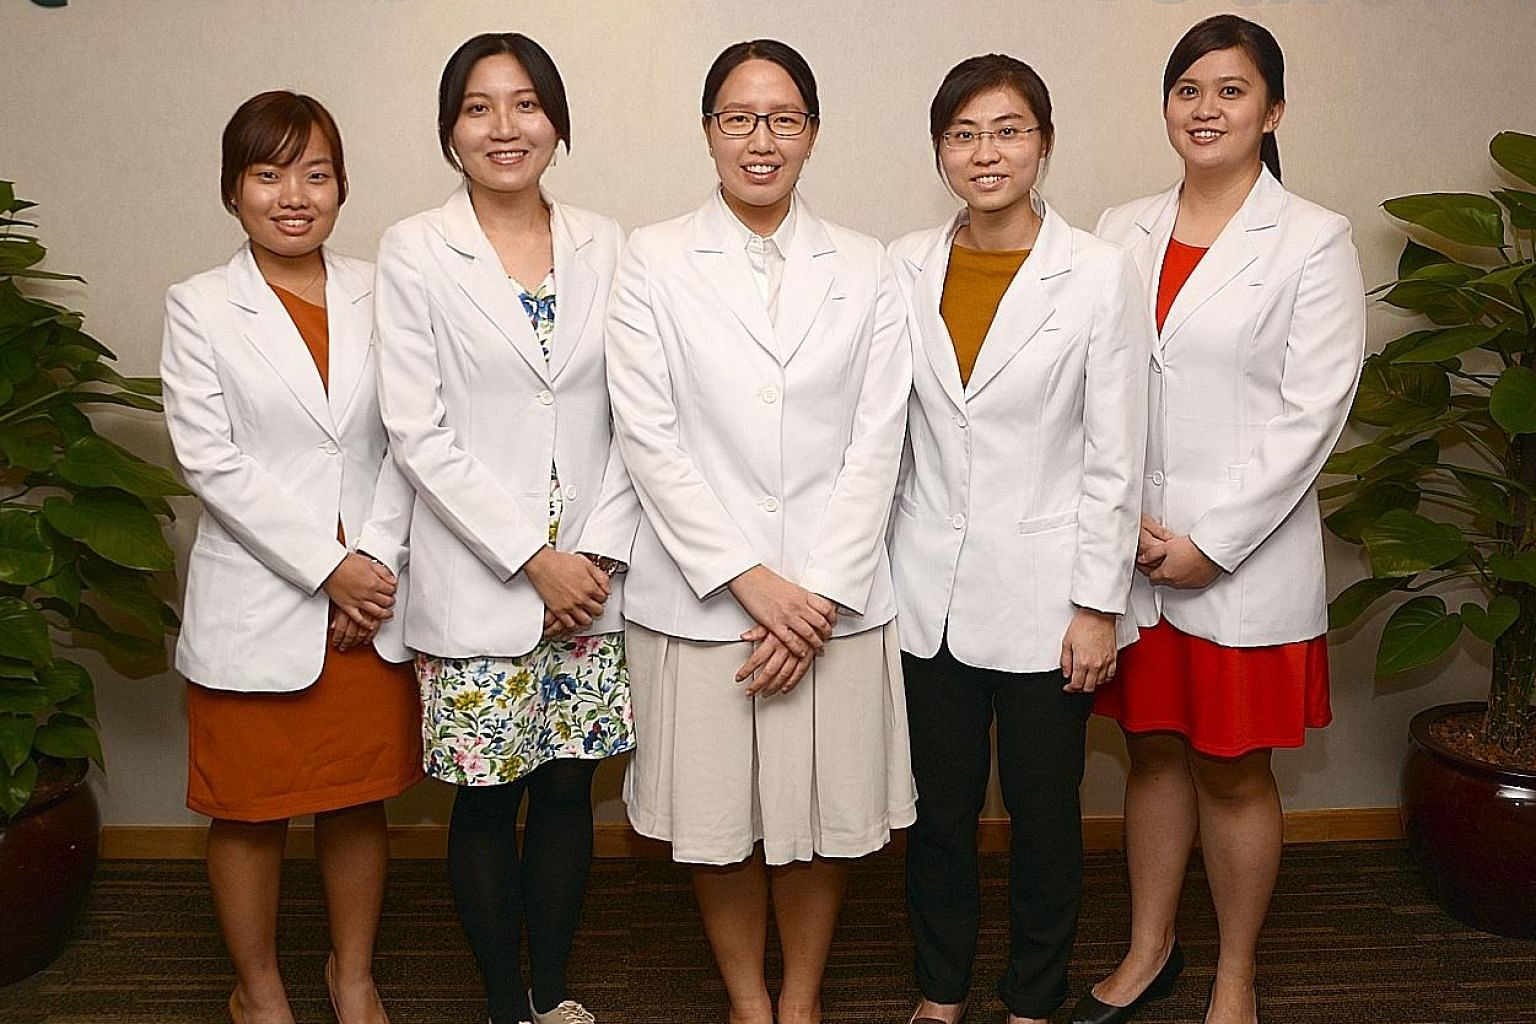 TCM physicians under age 40 at Raffles Chinese Medicine (from far left) Ms Tay Jia Ying, 28; Ms Tan Weii Zhu, 31; Ms Ong Fang Ying, 29; Ms Chua Hui Zi, 30; and Ms Ho Chin Ee, 31.